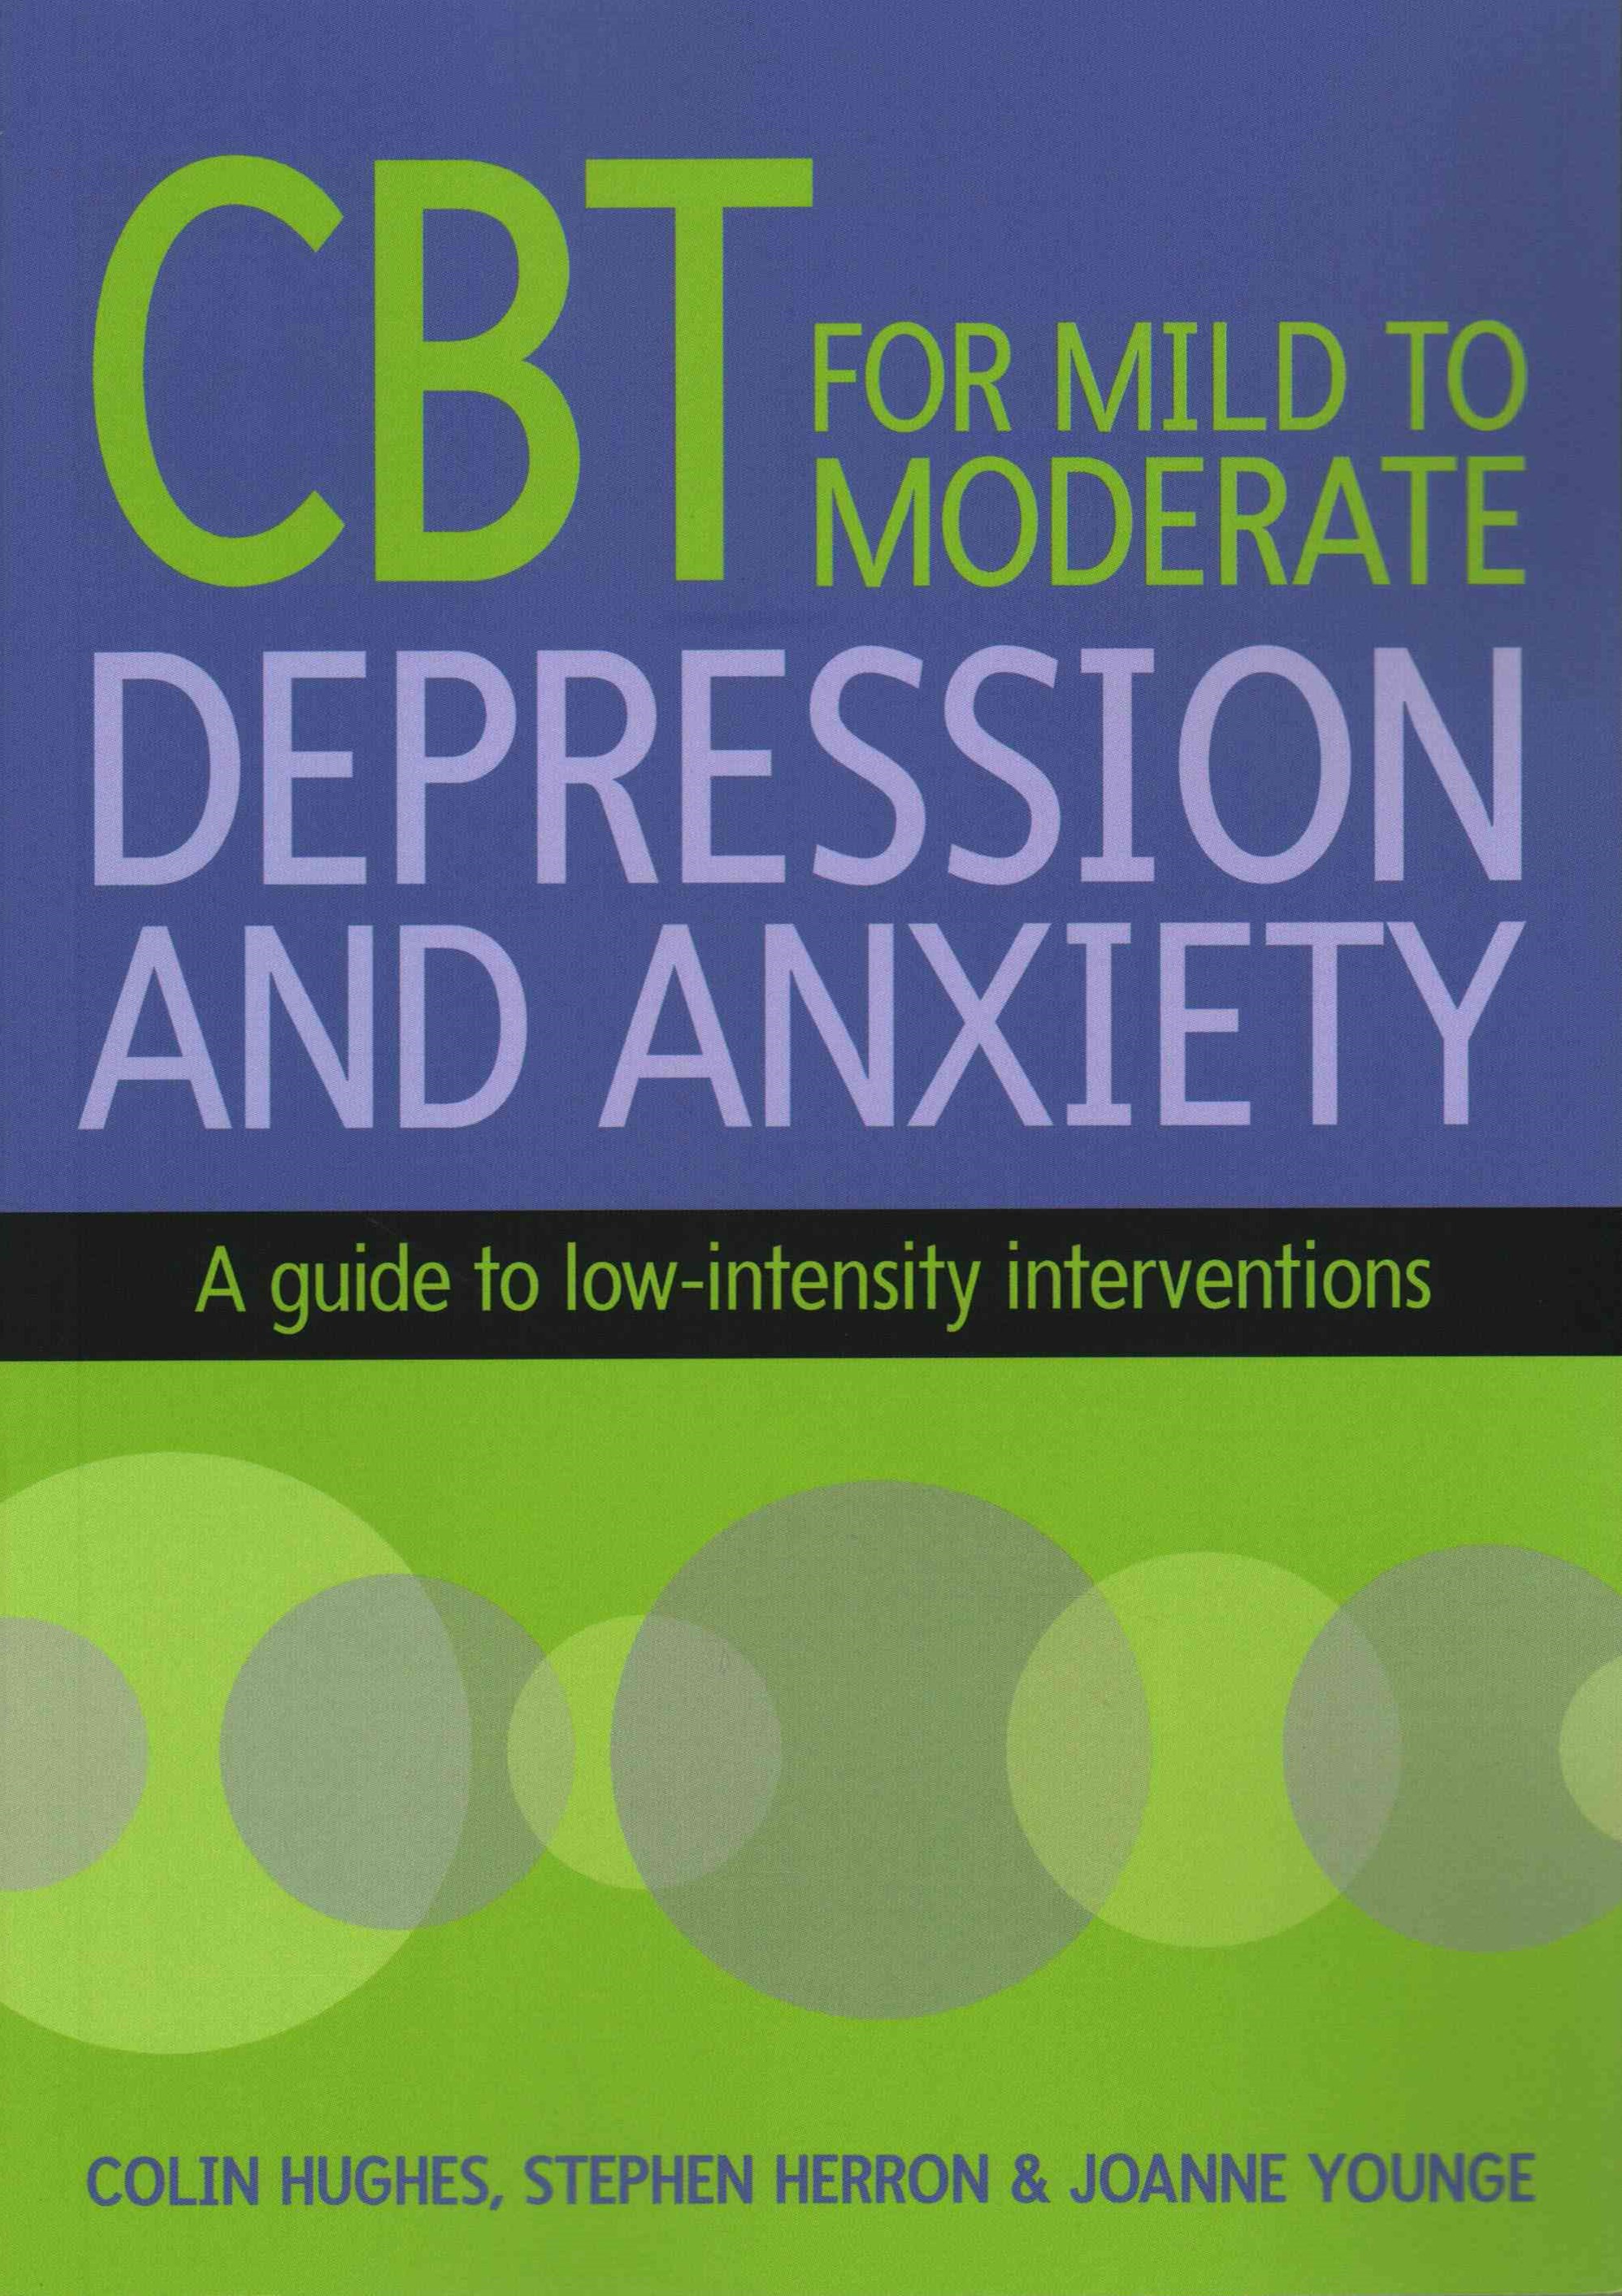 CBT for Mild to Moderate Depression Andanxiety